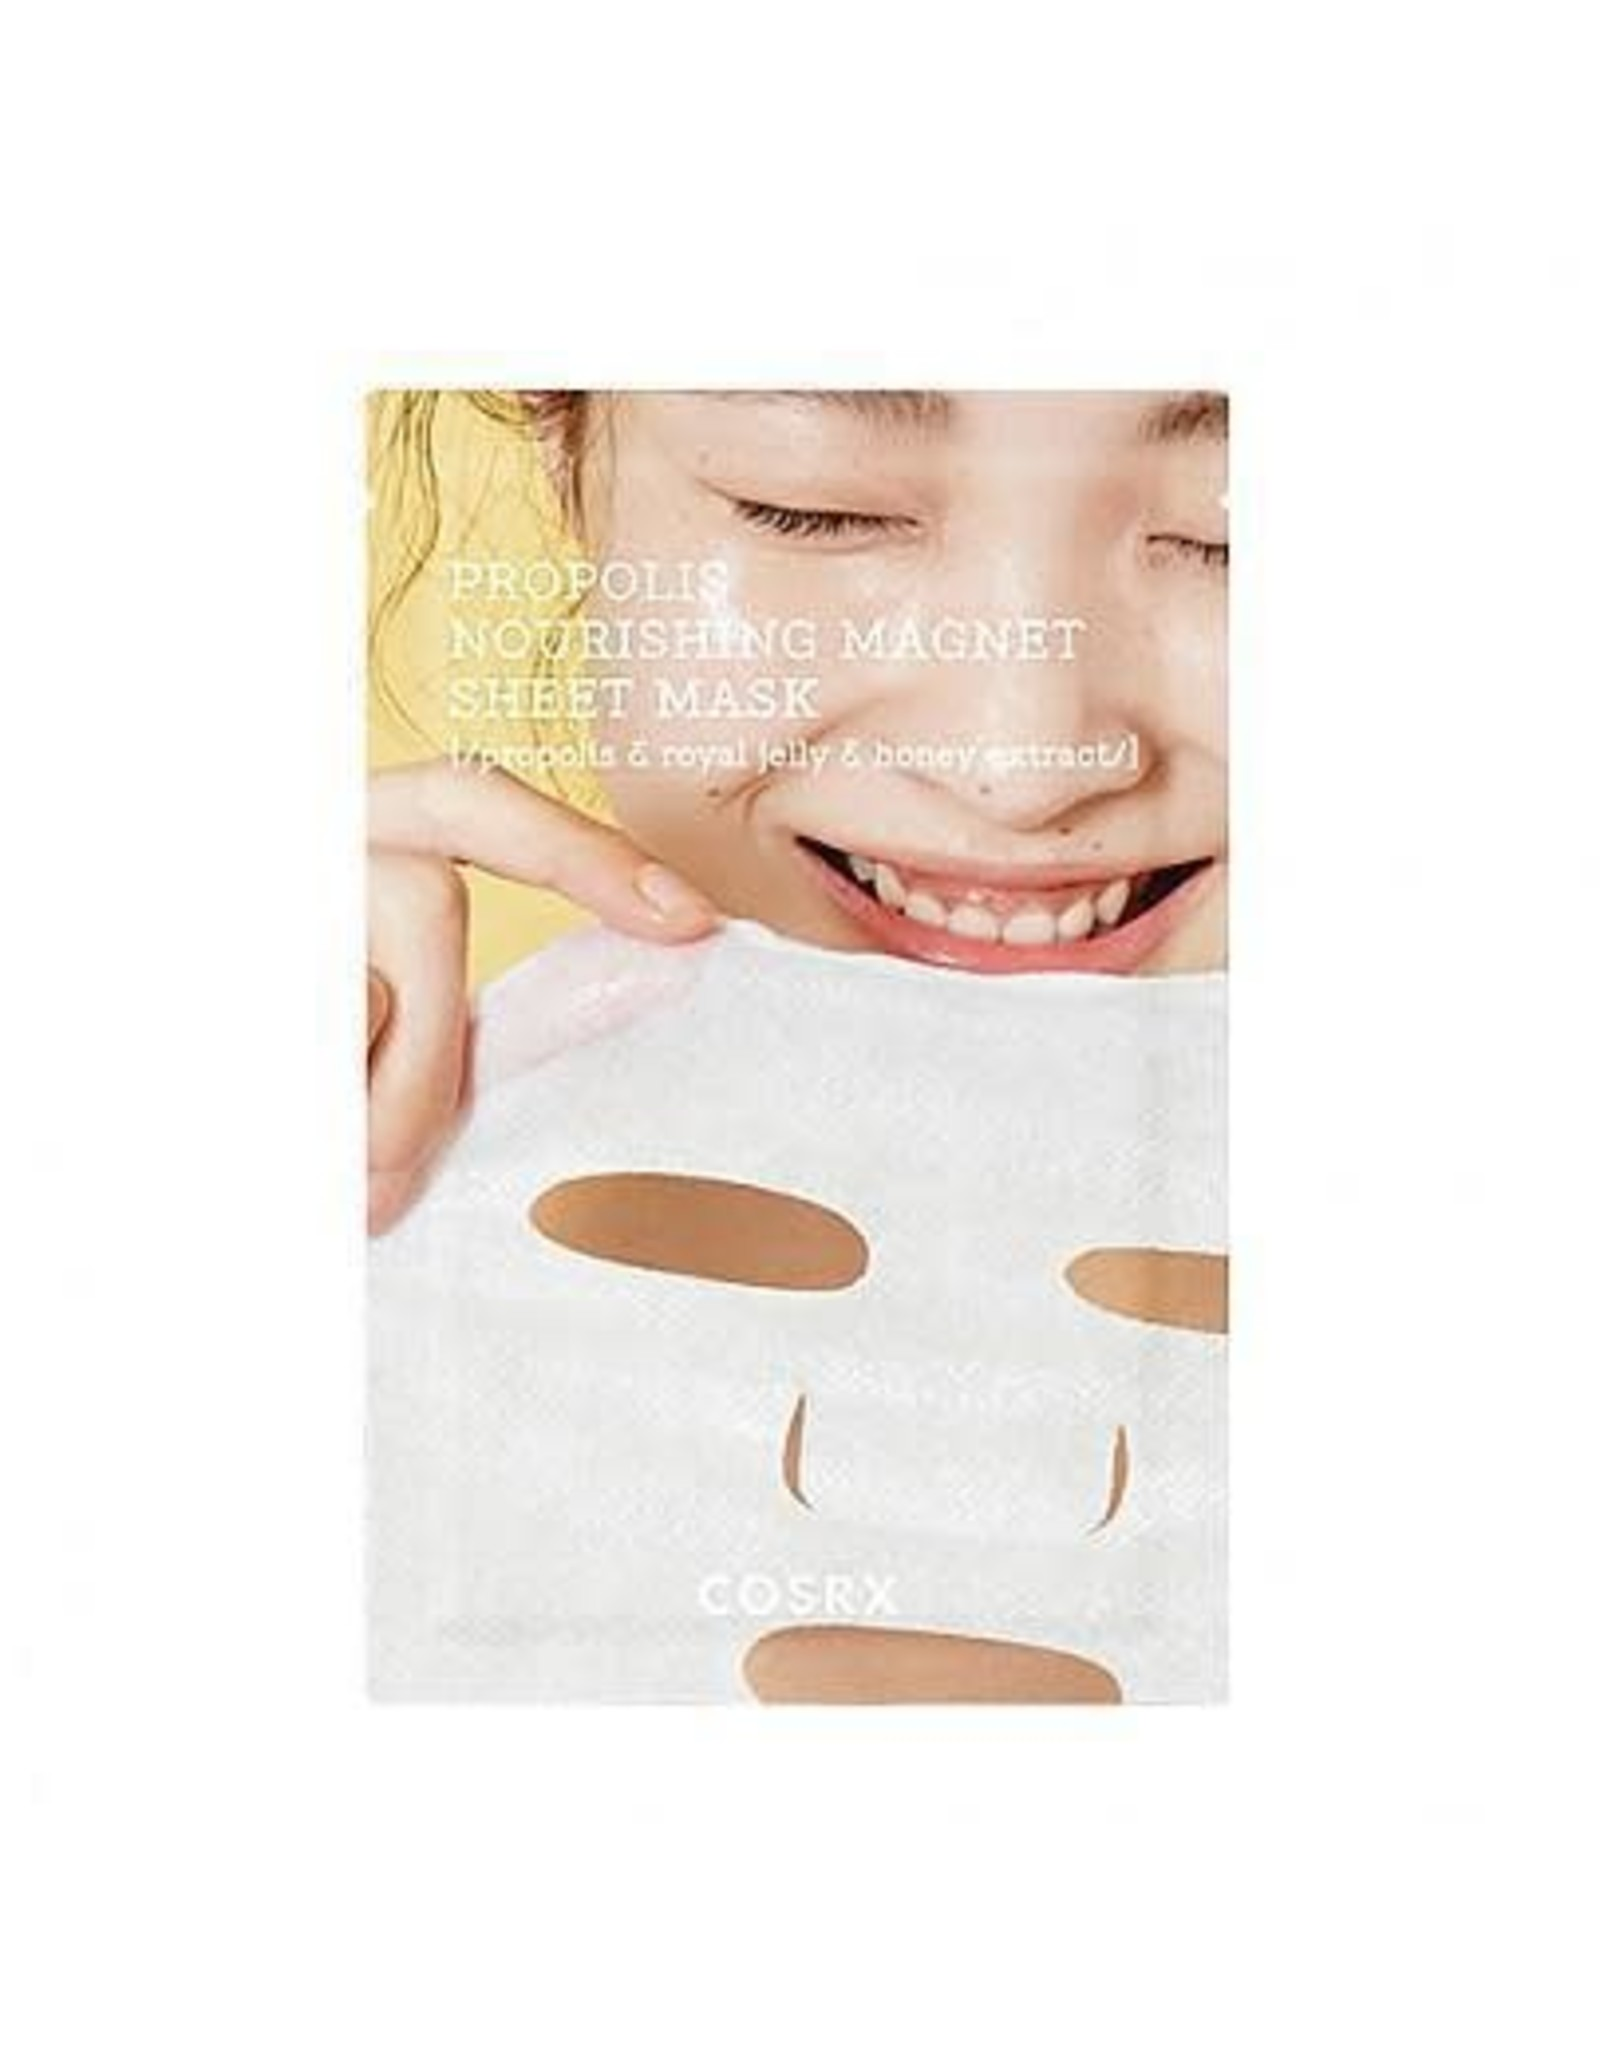 Cosrx Cosrx Full Fit Propolis Sheet Mask